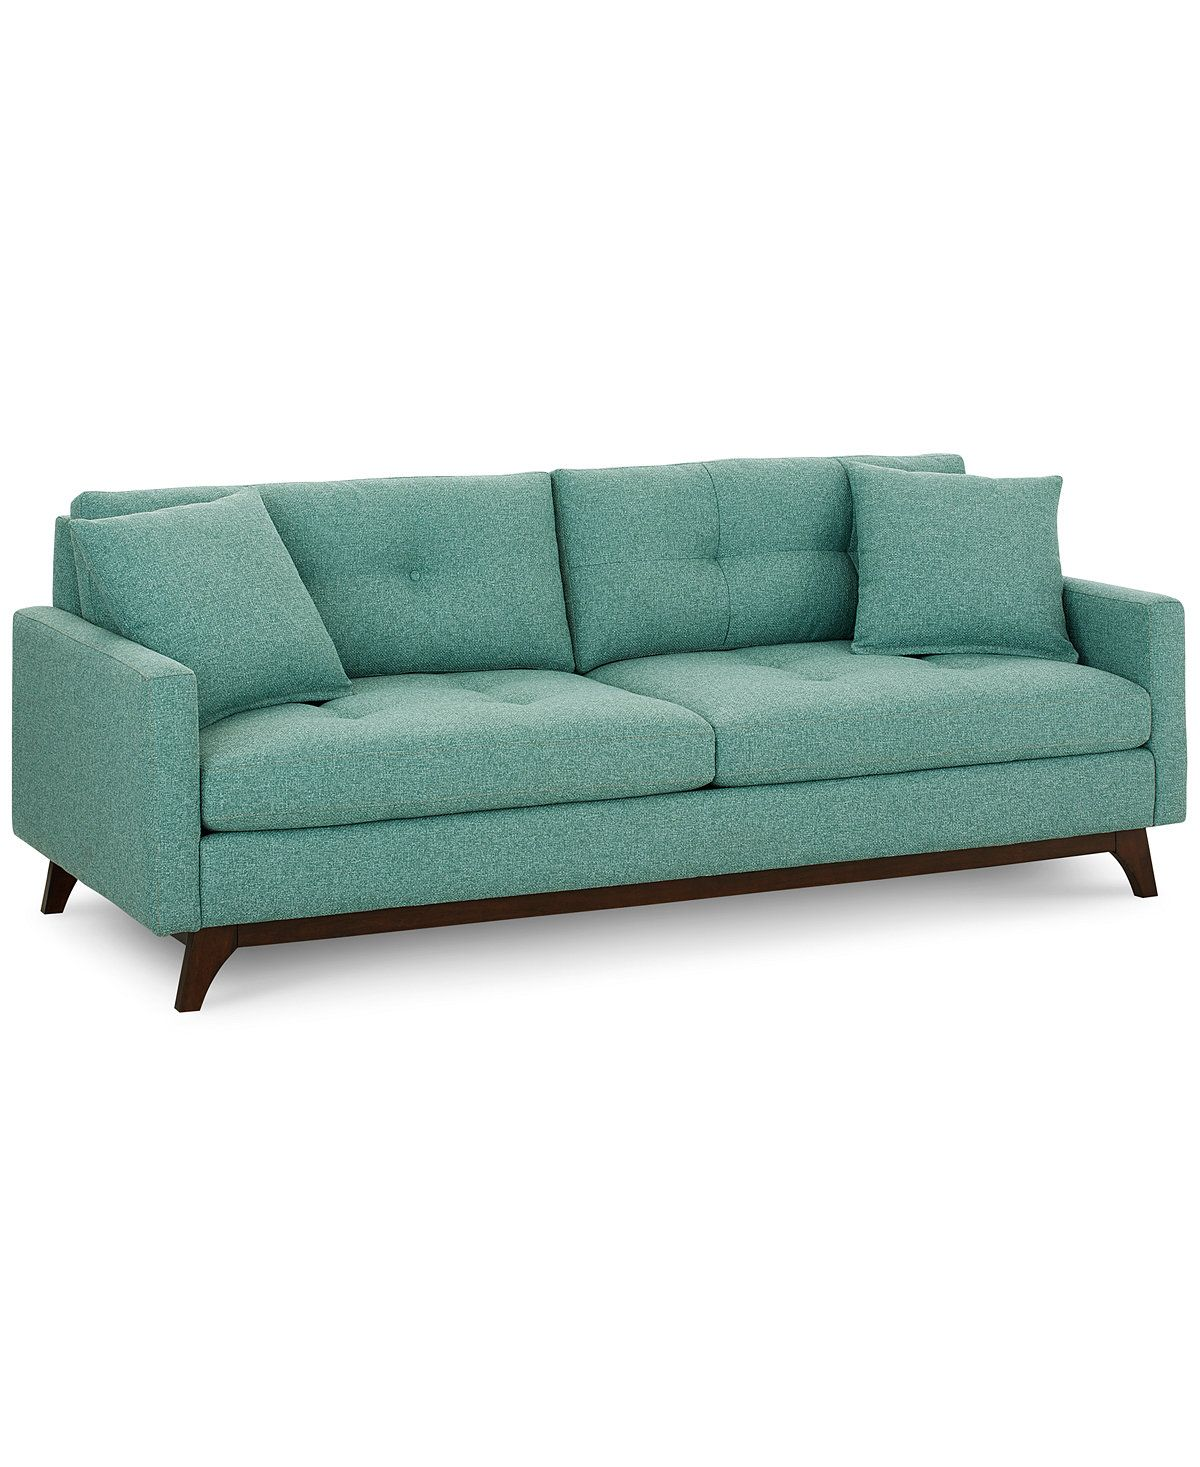 Nari Tufted Back Sofa With 2 Toss Pillows, Created For Macy's